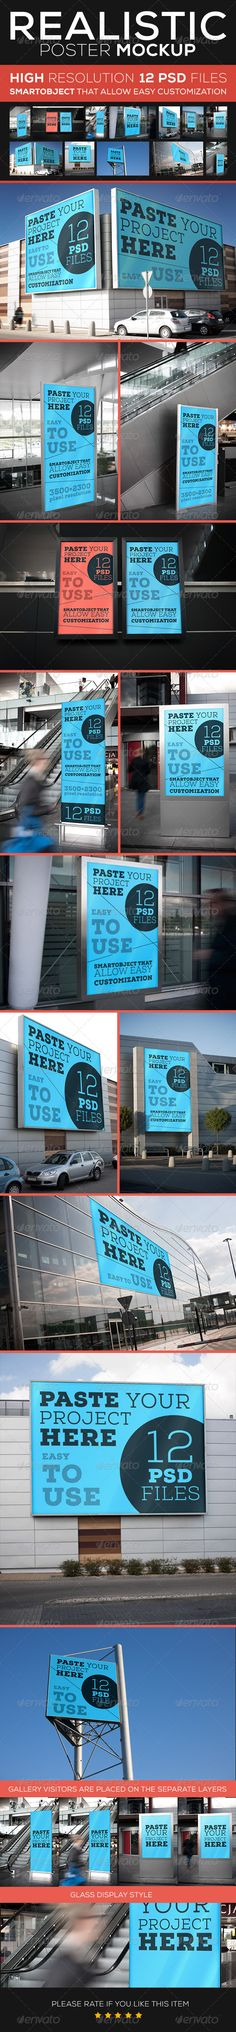 Poster MockUp — Photoshop PSD #mock-up template #flyer • Available here → https://graphicriver.net/item/poster-mockup/5841175?ref=pxcr